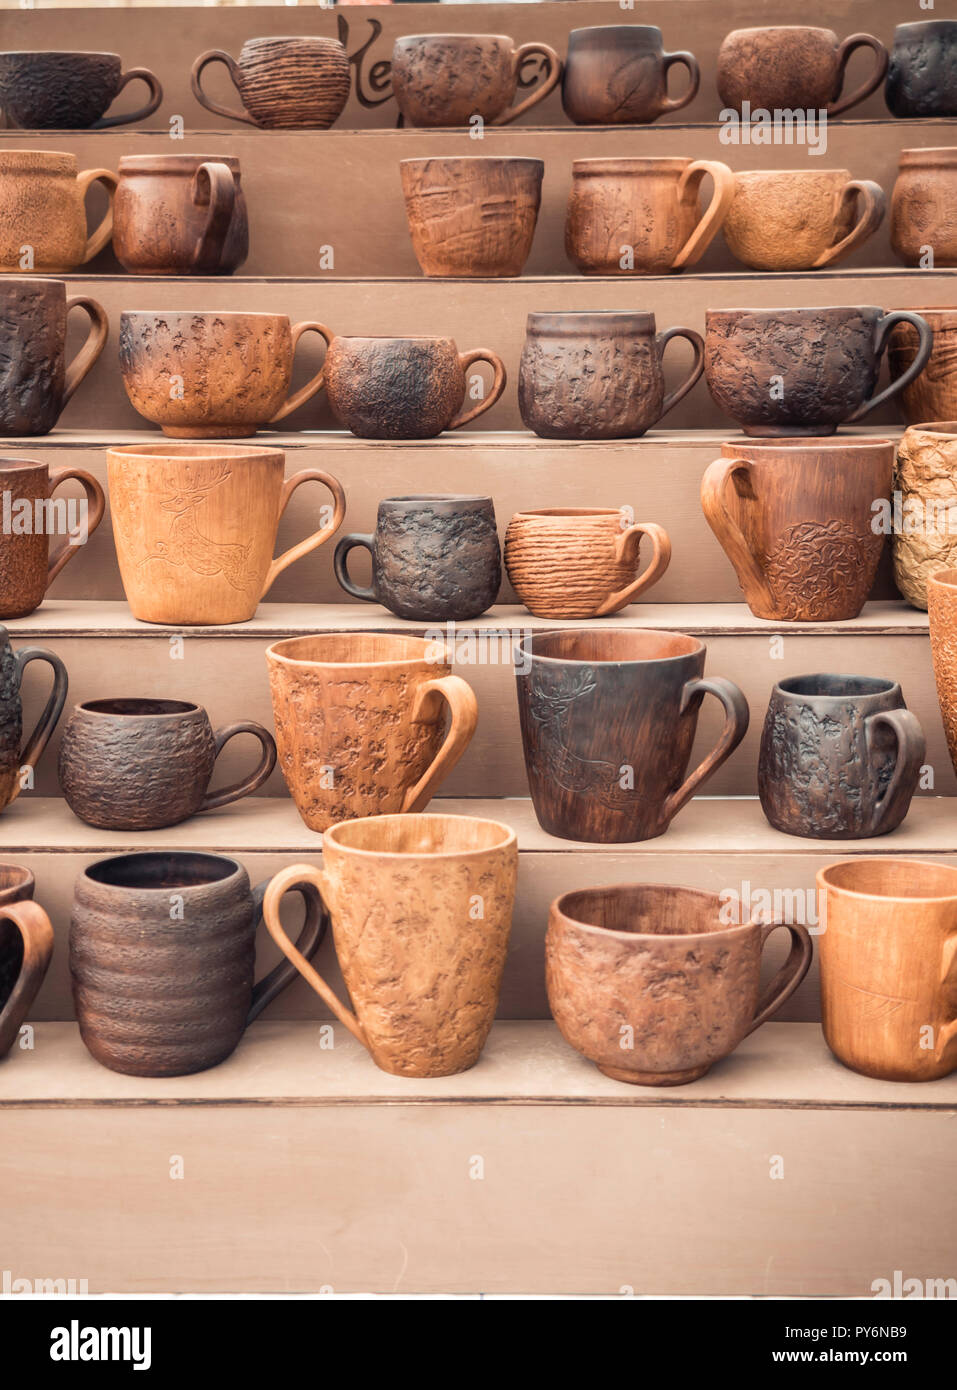 Handmade Clay Mugs Stands On The Counter Eco Friendly Cookware Pottery Cups Sale Stock Photo Alamy